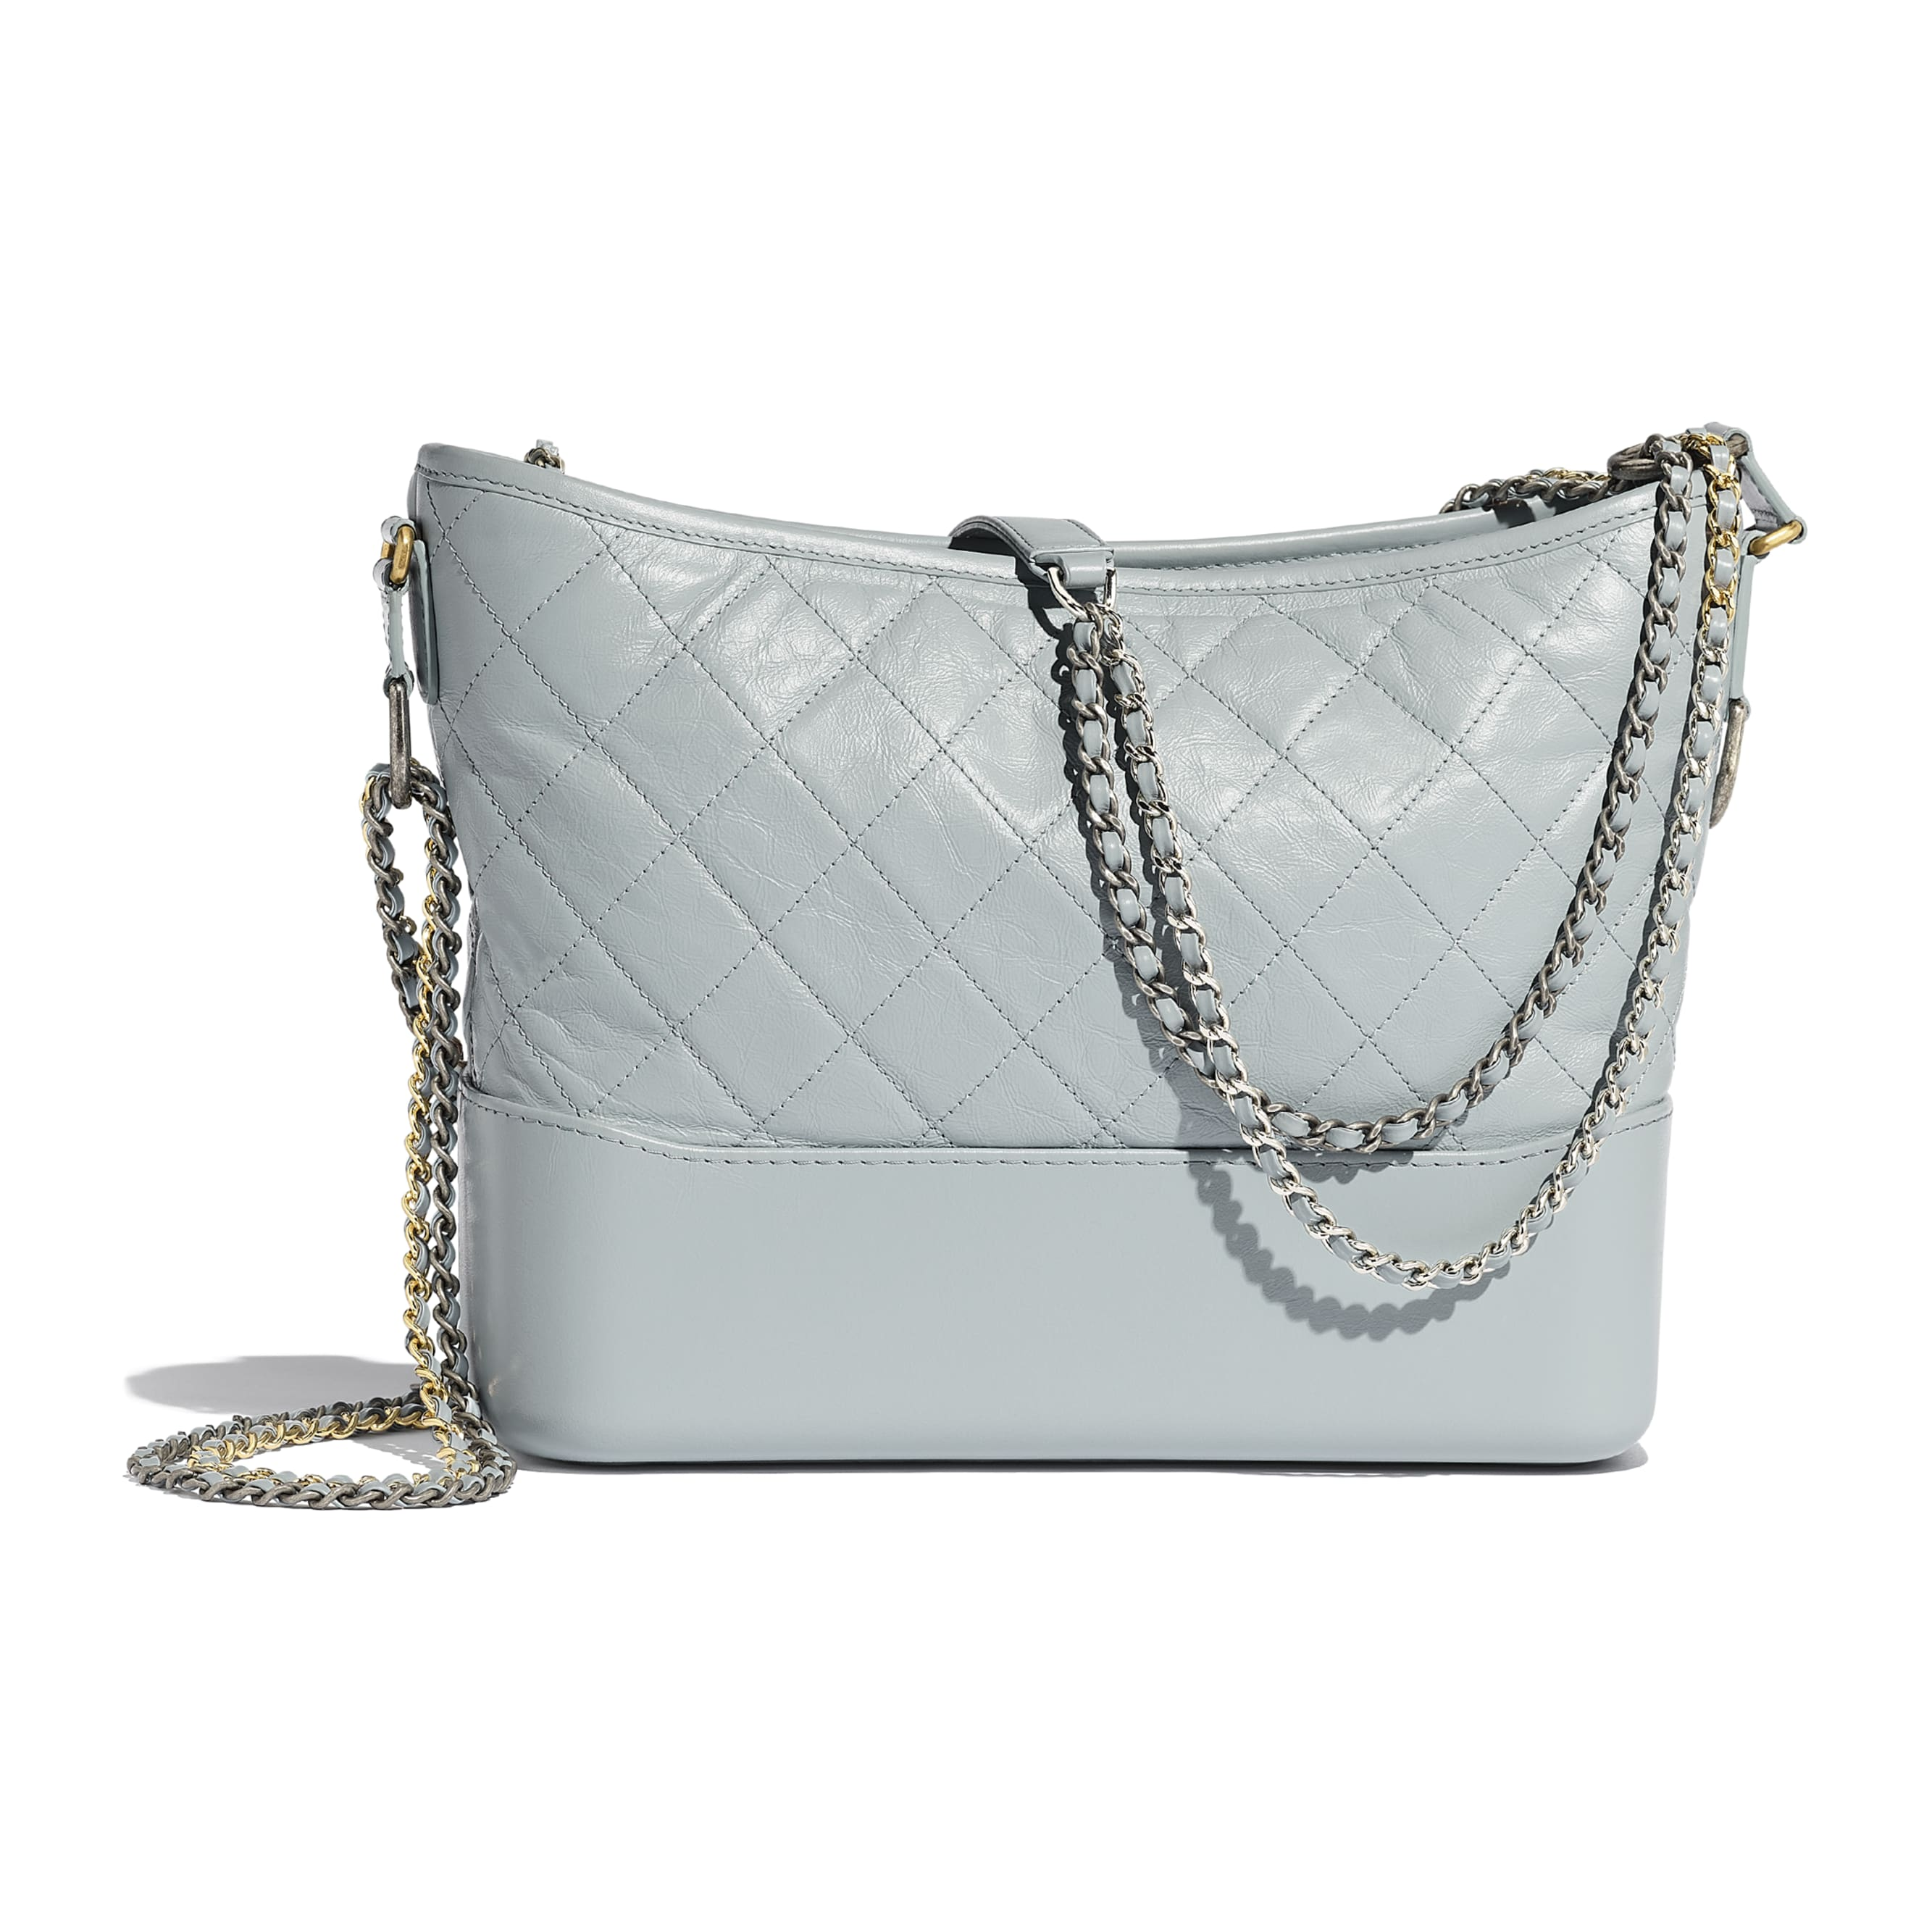 CHANEL'S GABRIELLE Hobo Bag - Light Blue - Aged Calfskin, Smooth Calfskin, Silver-Tone & Gold-Tone Metal - Alternative view - see standard sized version